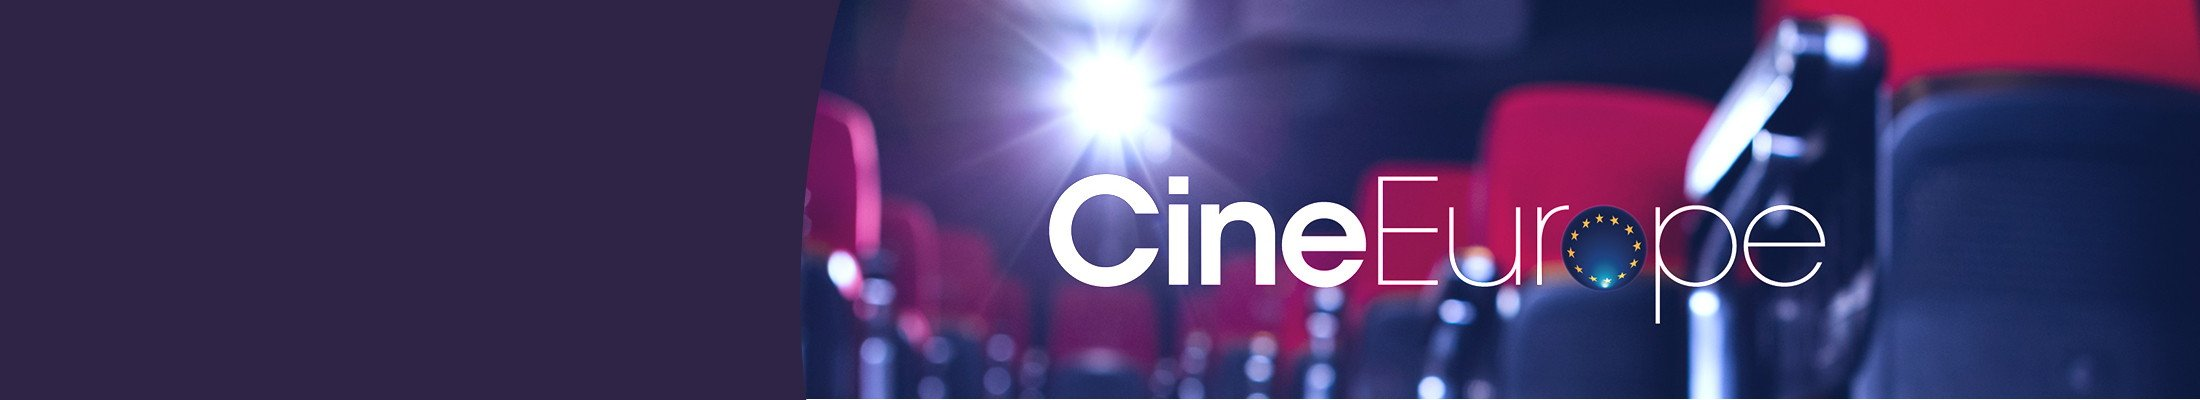 CineEurope2017-HeroImageLarge